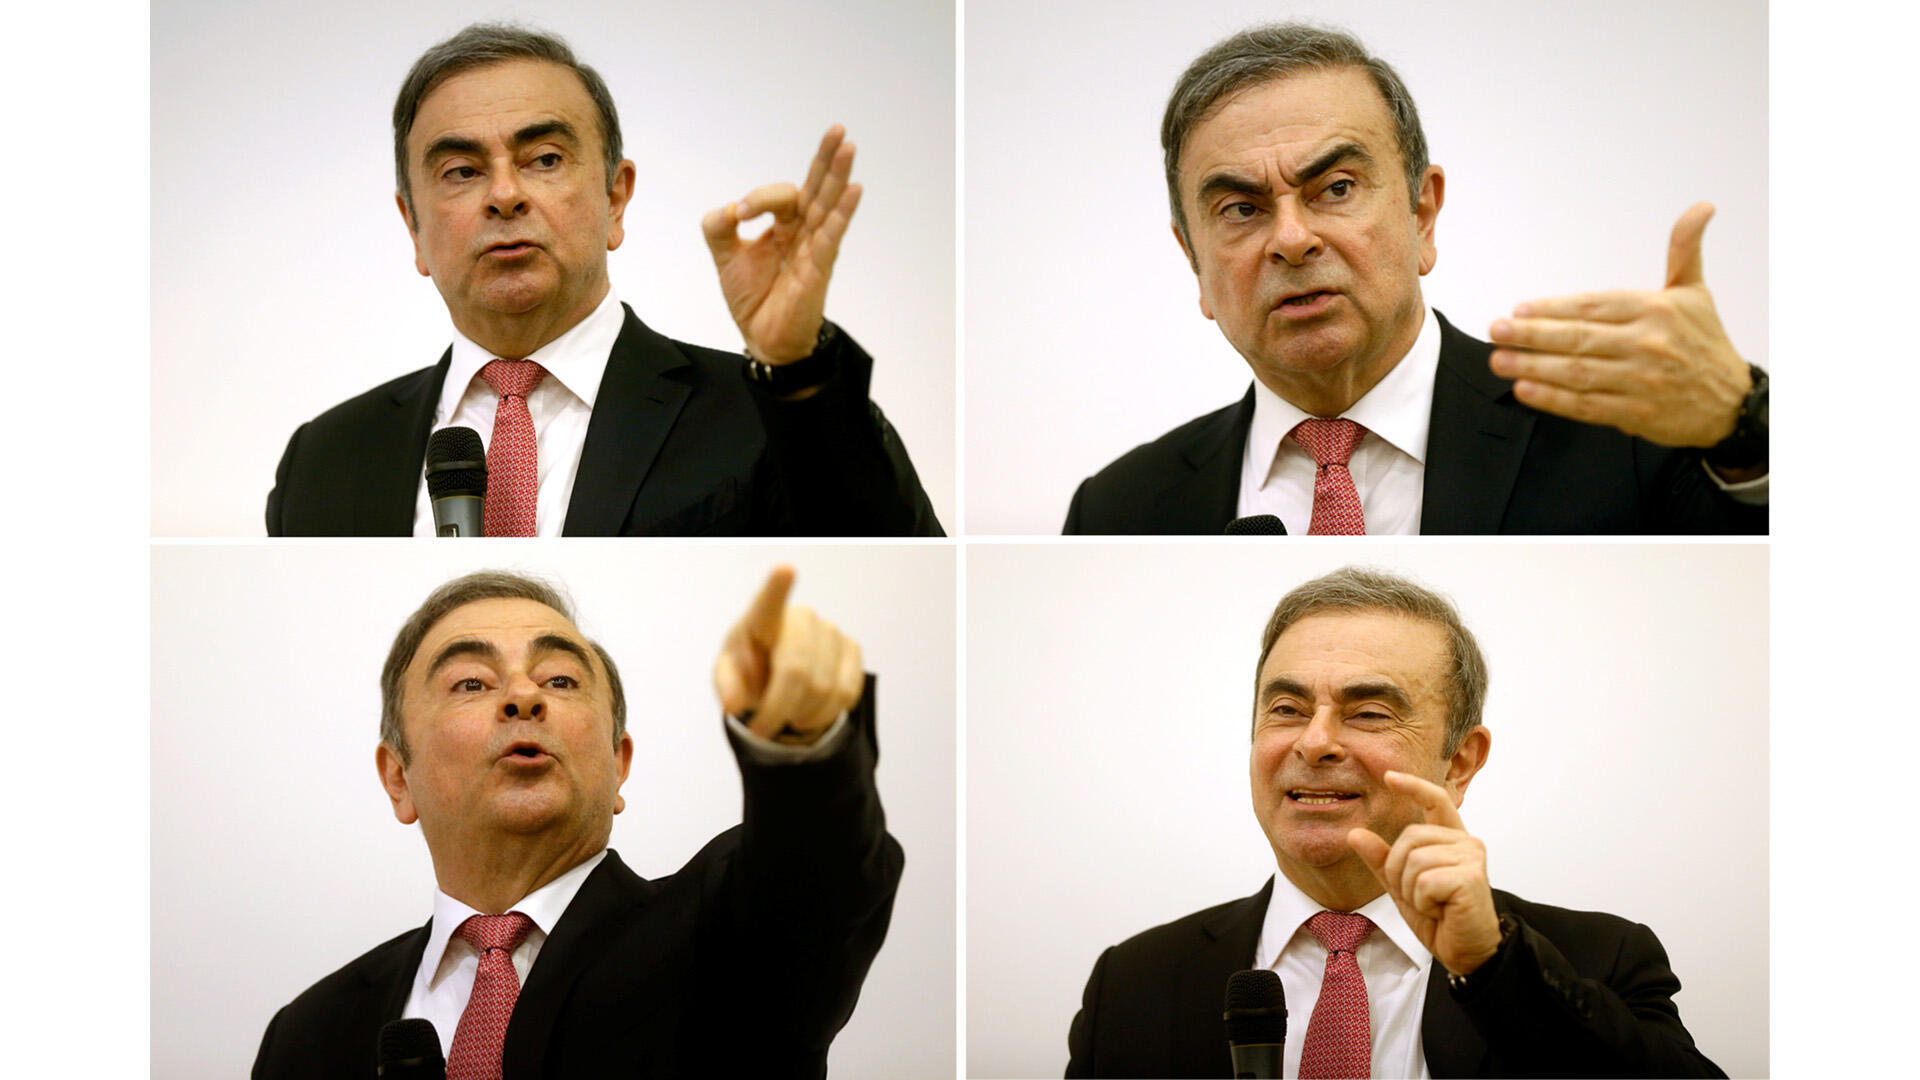 A combination of photos show Nissan chairman Carlos Ghosn gesturing during a news conference at the Lebanese Press Syndicate in Beirut, Lebanon January 8, 2020. Picture taken January 8, 2020.